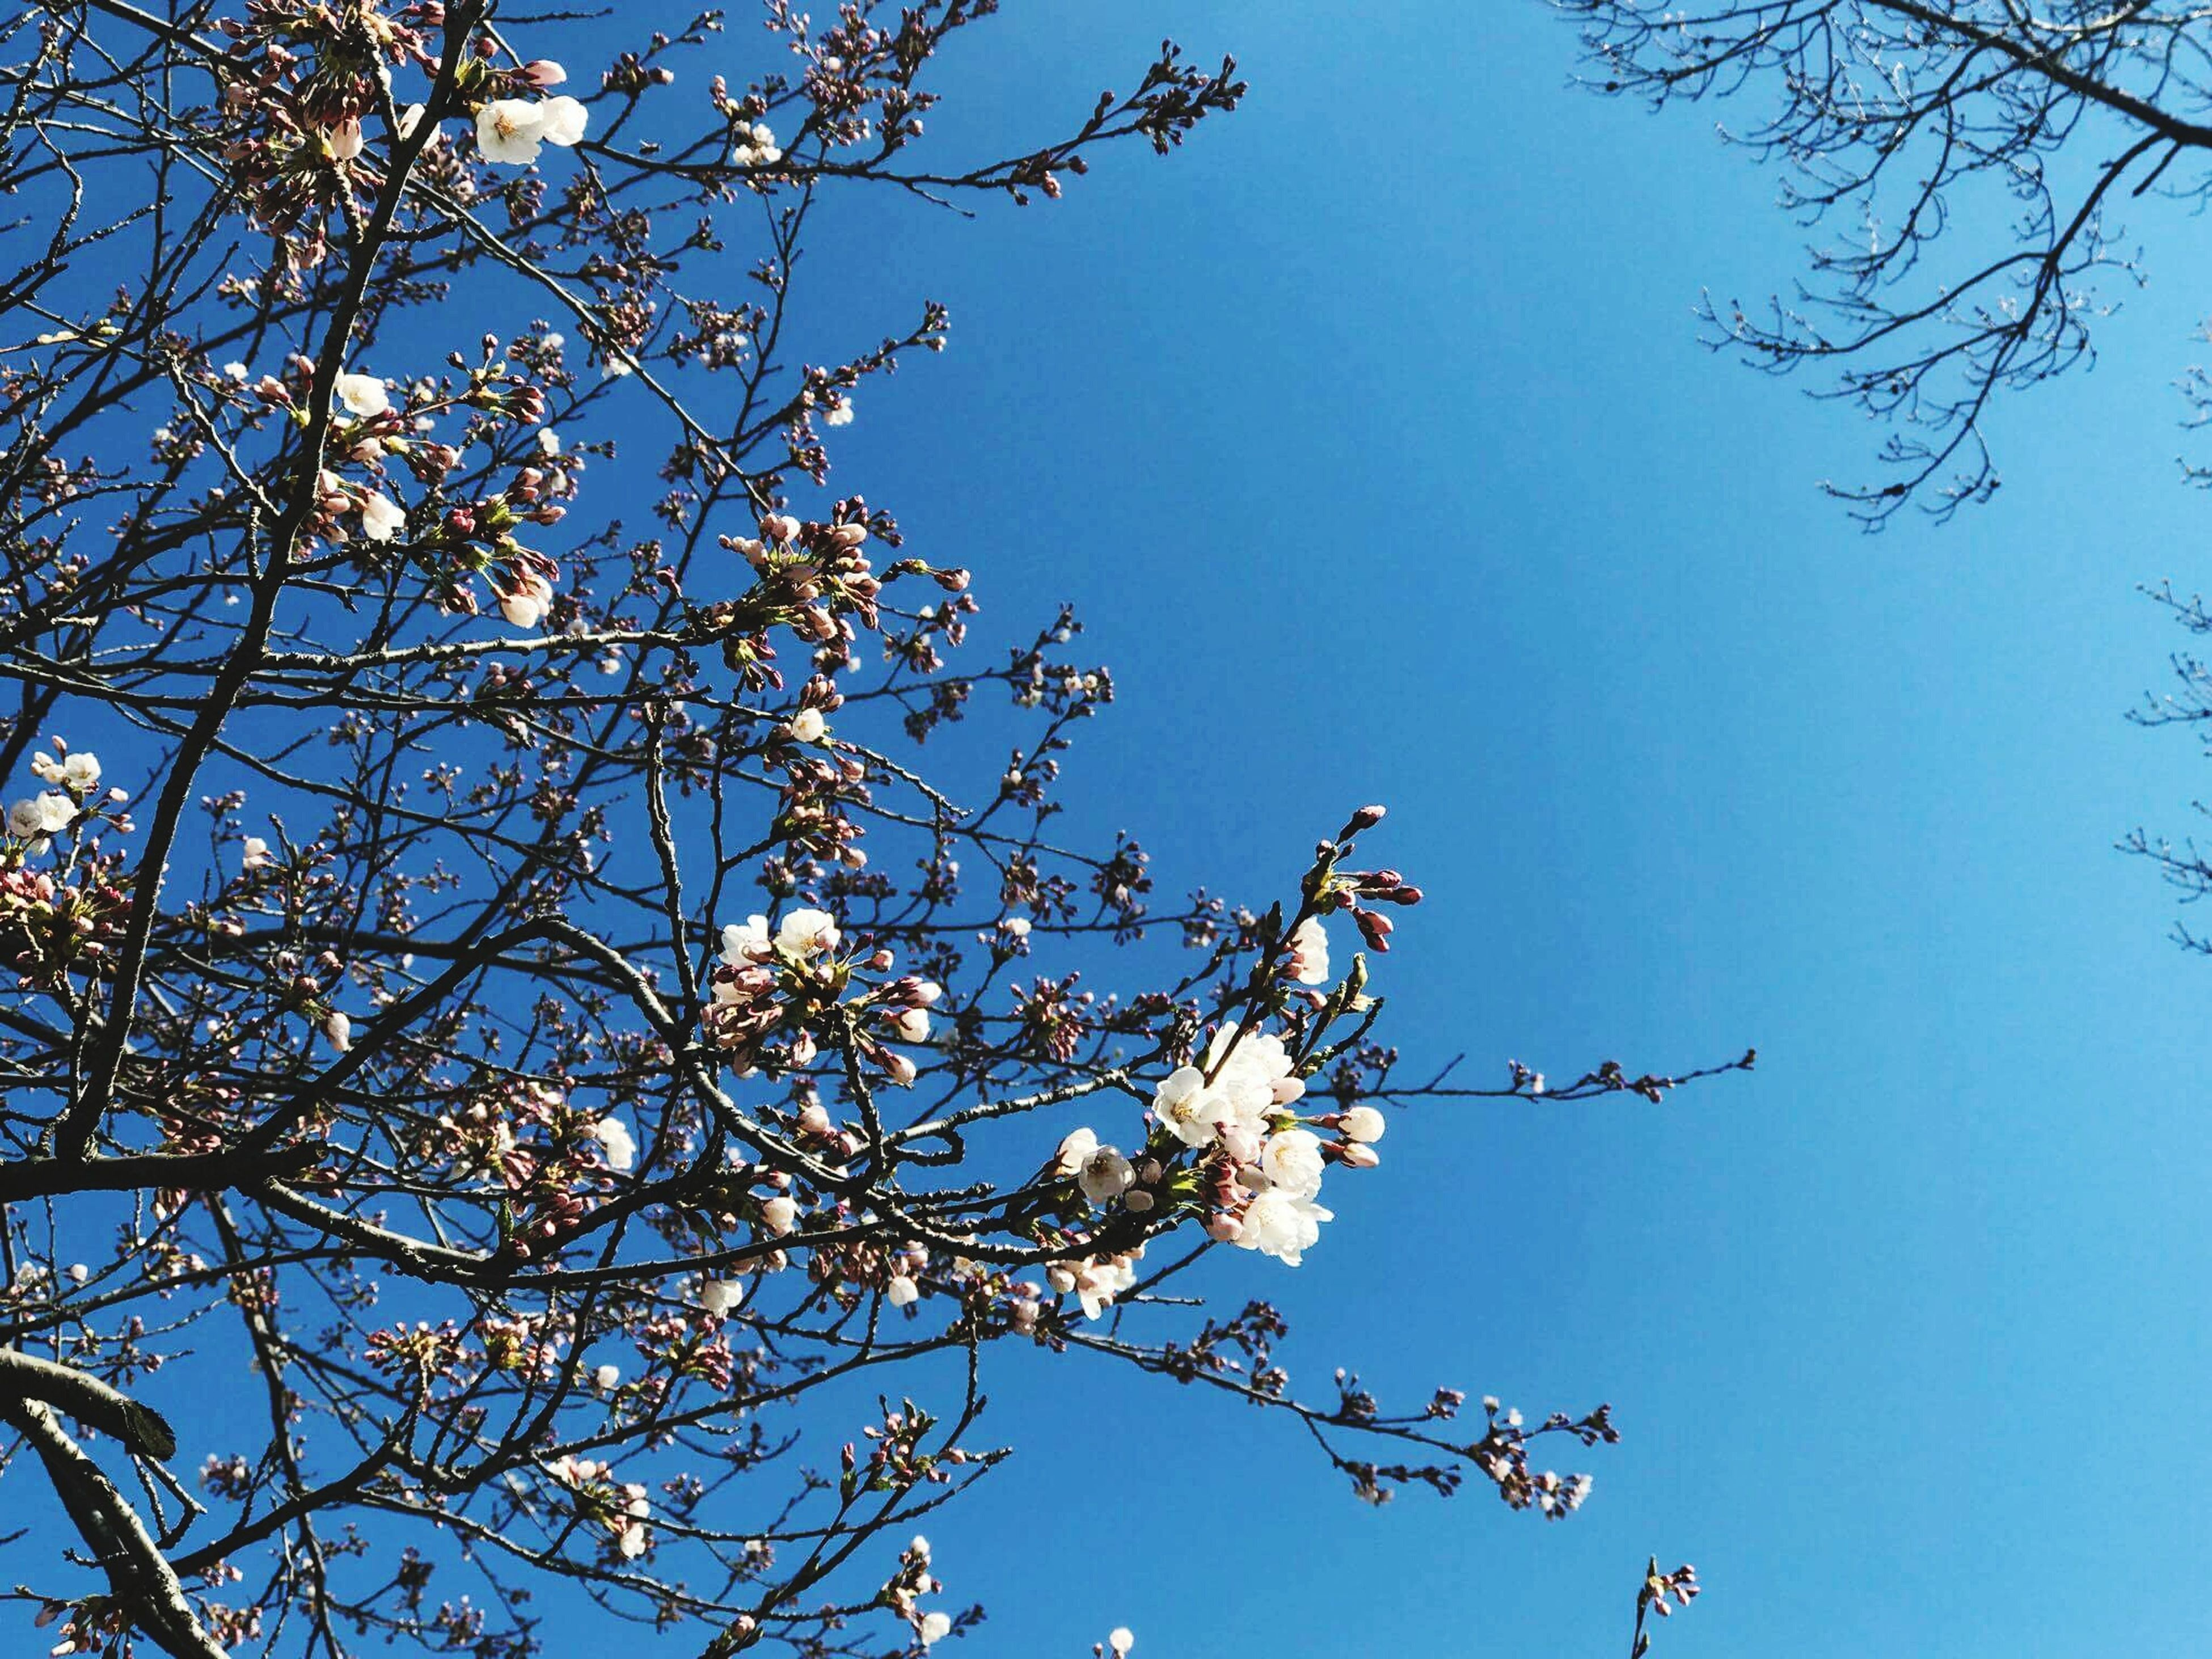 tree, low angle view, nature, branch, beauty in nature, springtime, bird, growth, animal themes, flower, one animal, no people, blossom, outdoors, sky, day, fragility, clear sky, animals in the wild, freshness, perching, plum blossom